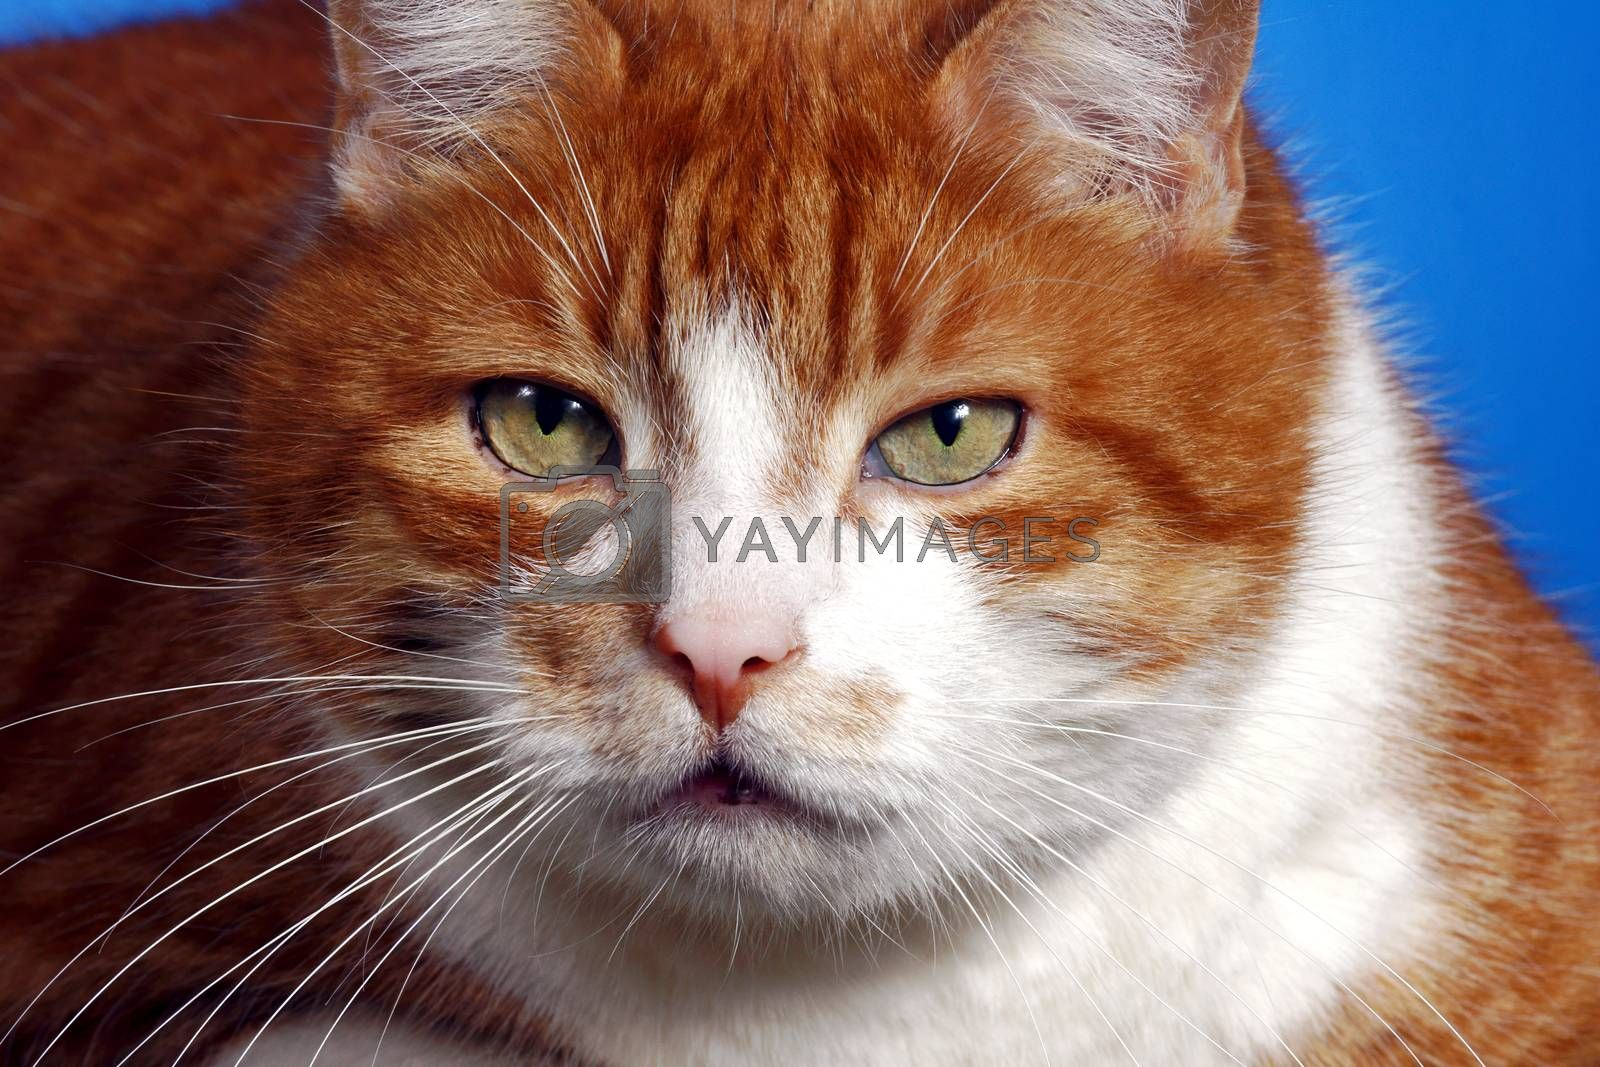 Royalty free image of portrait of ginger European cat by gkordus